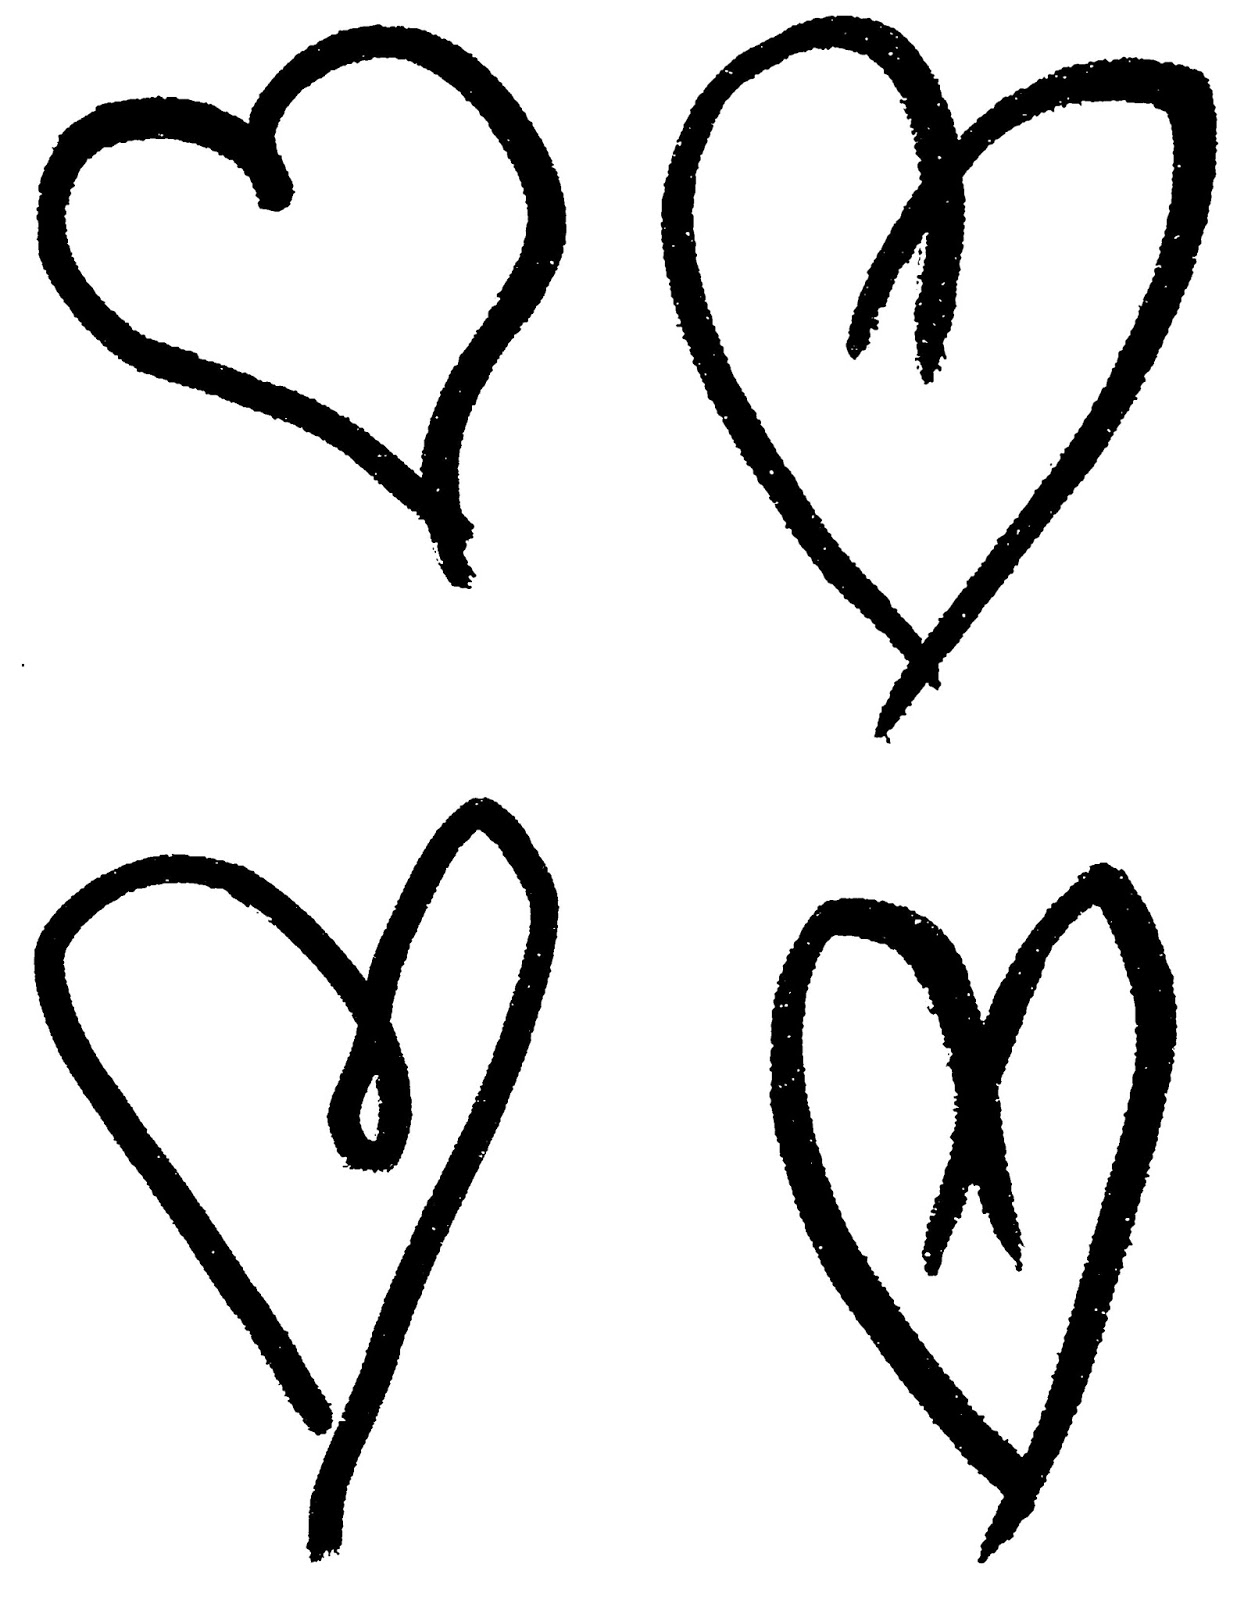 Drawing clipart heart. Digital stamp design printable